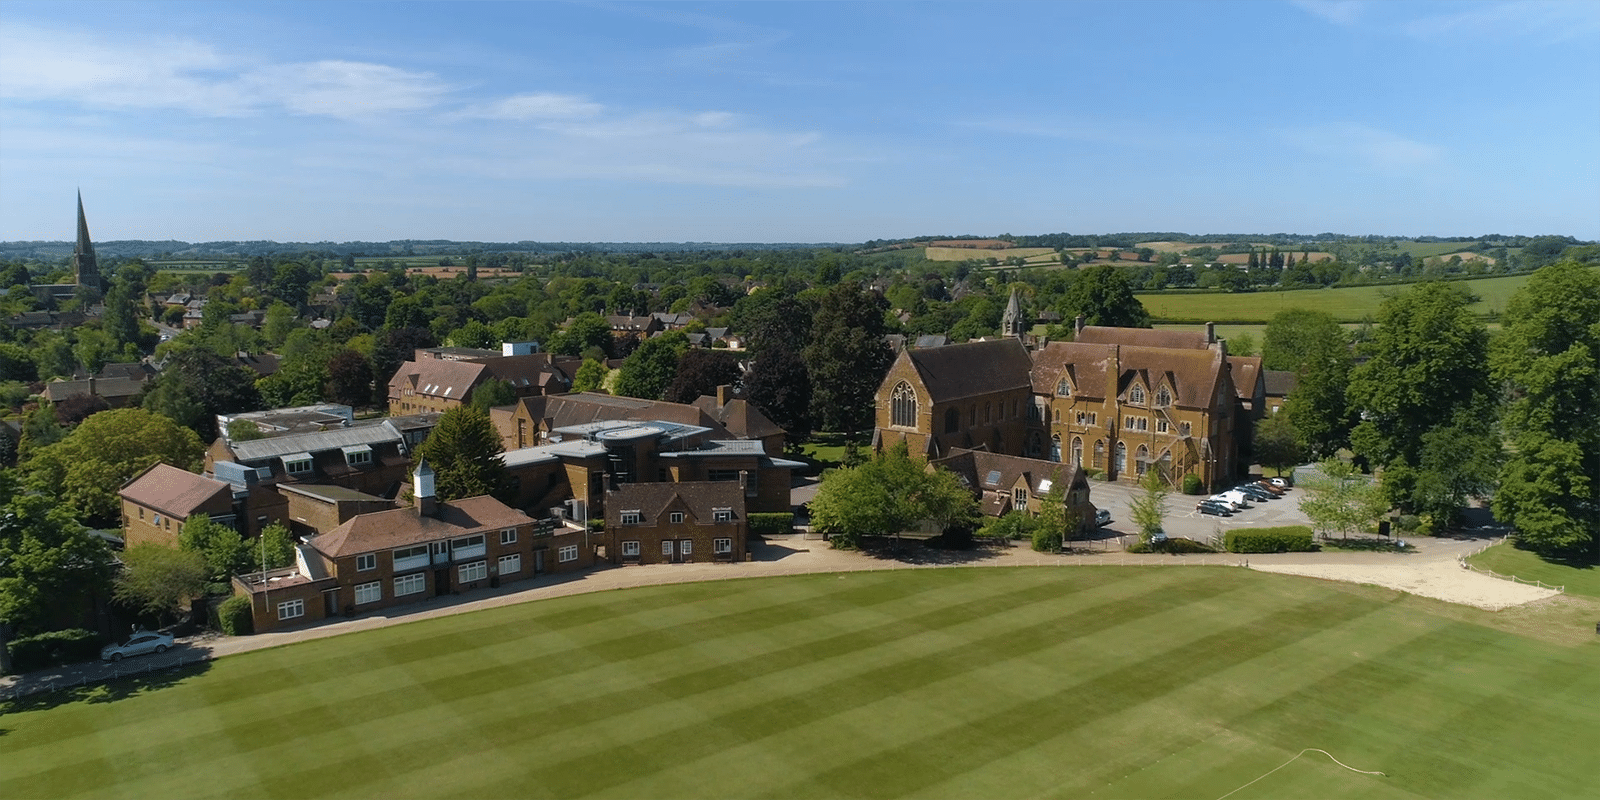 Drone shot of strawberry terrace of the school